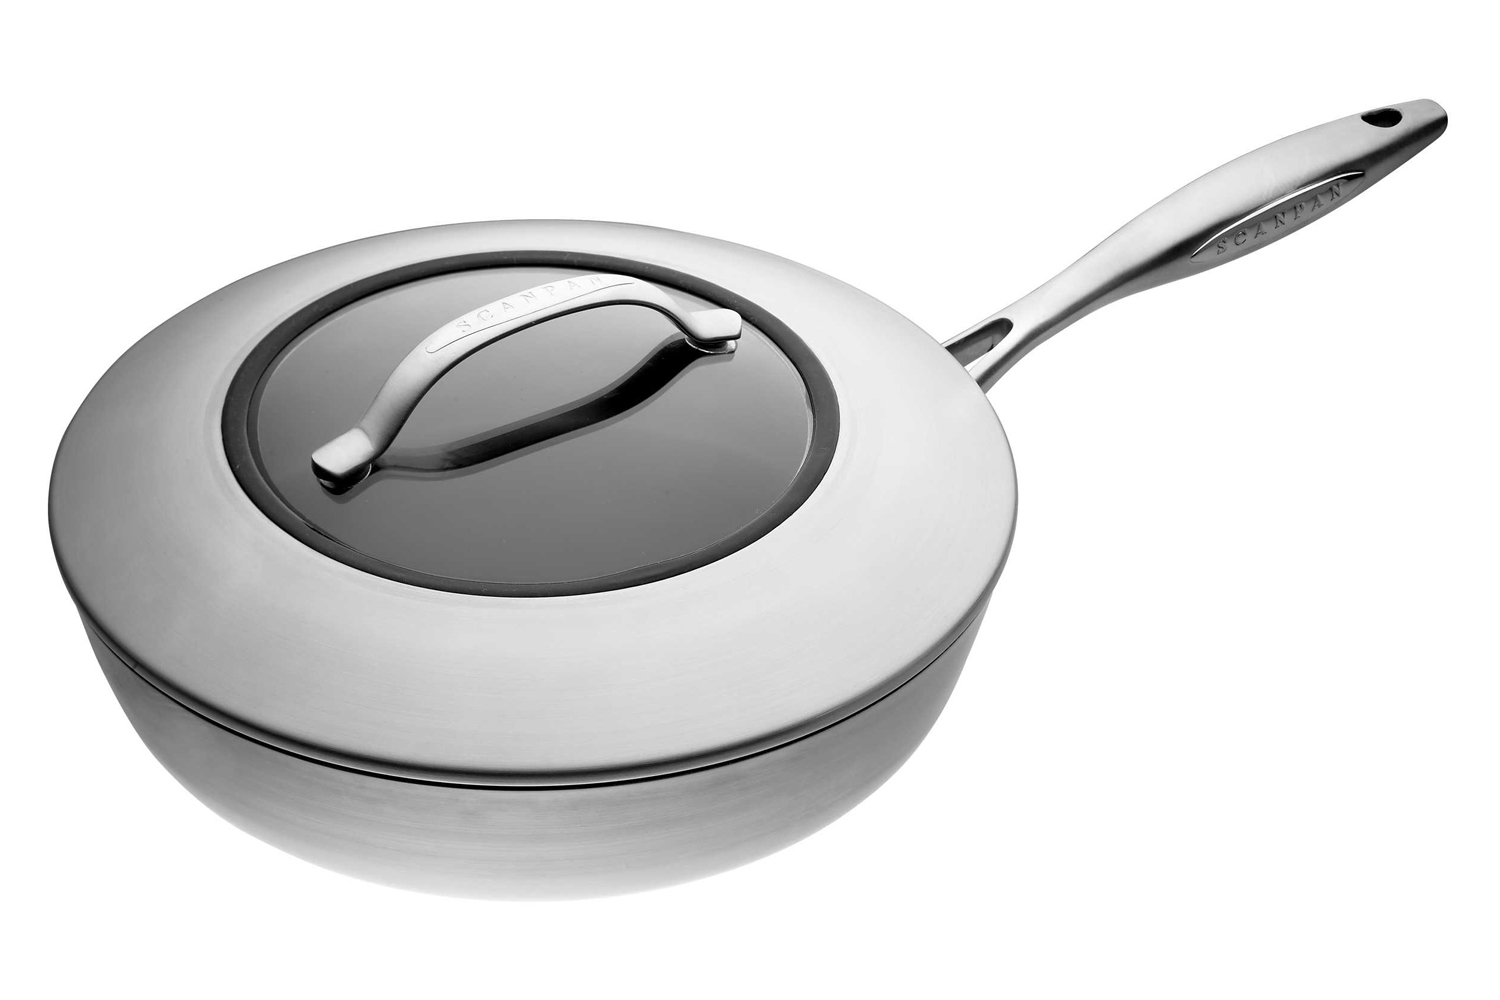 Scanpan CTX 10 1/4 inch Nonstick Saute Pan